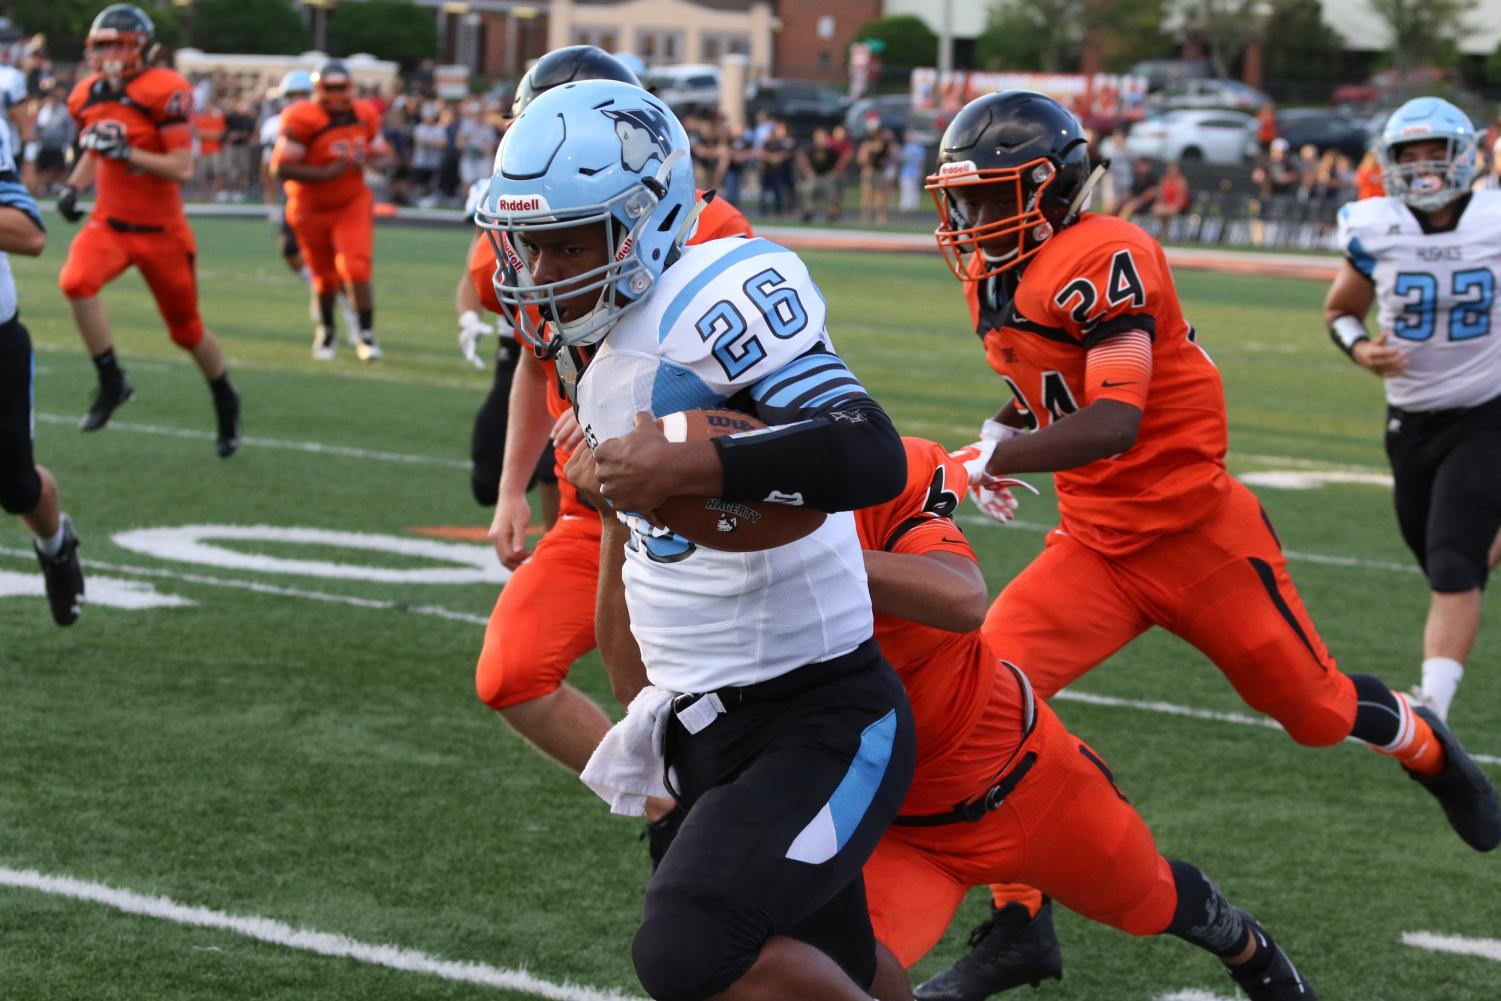 Running back Jordan Gilbert stiff arms a tackler during last year's game against Oviedo. The varsity team lost 48-27. This year's game will be on Sept. 7 at 7 p.m.